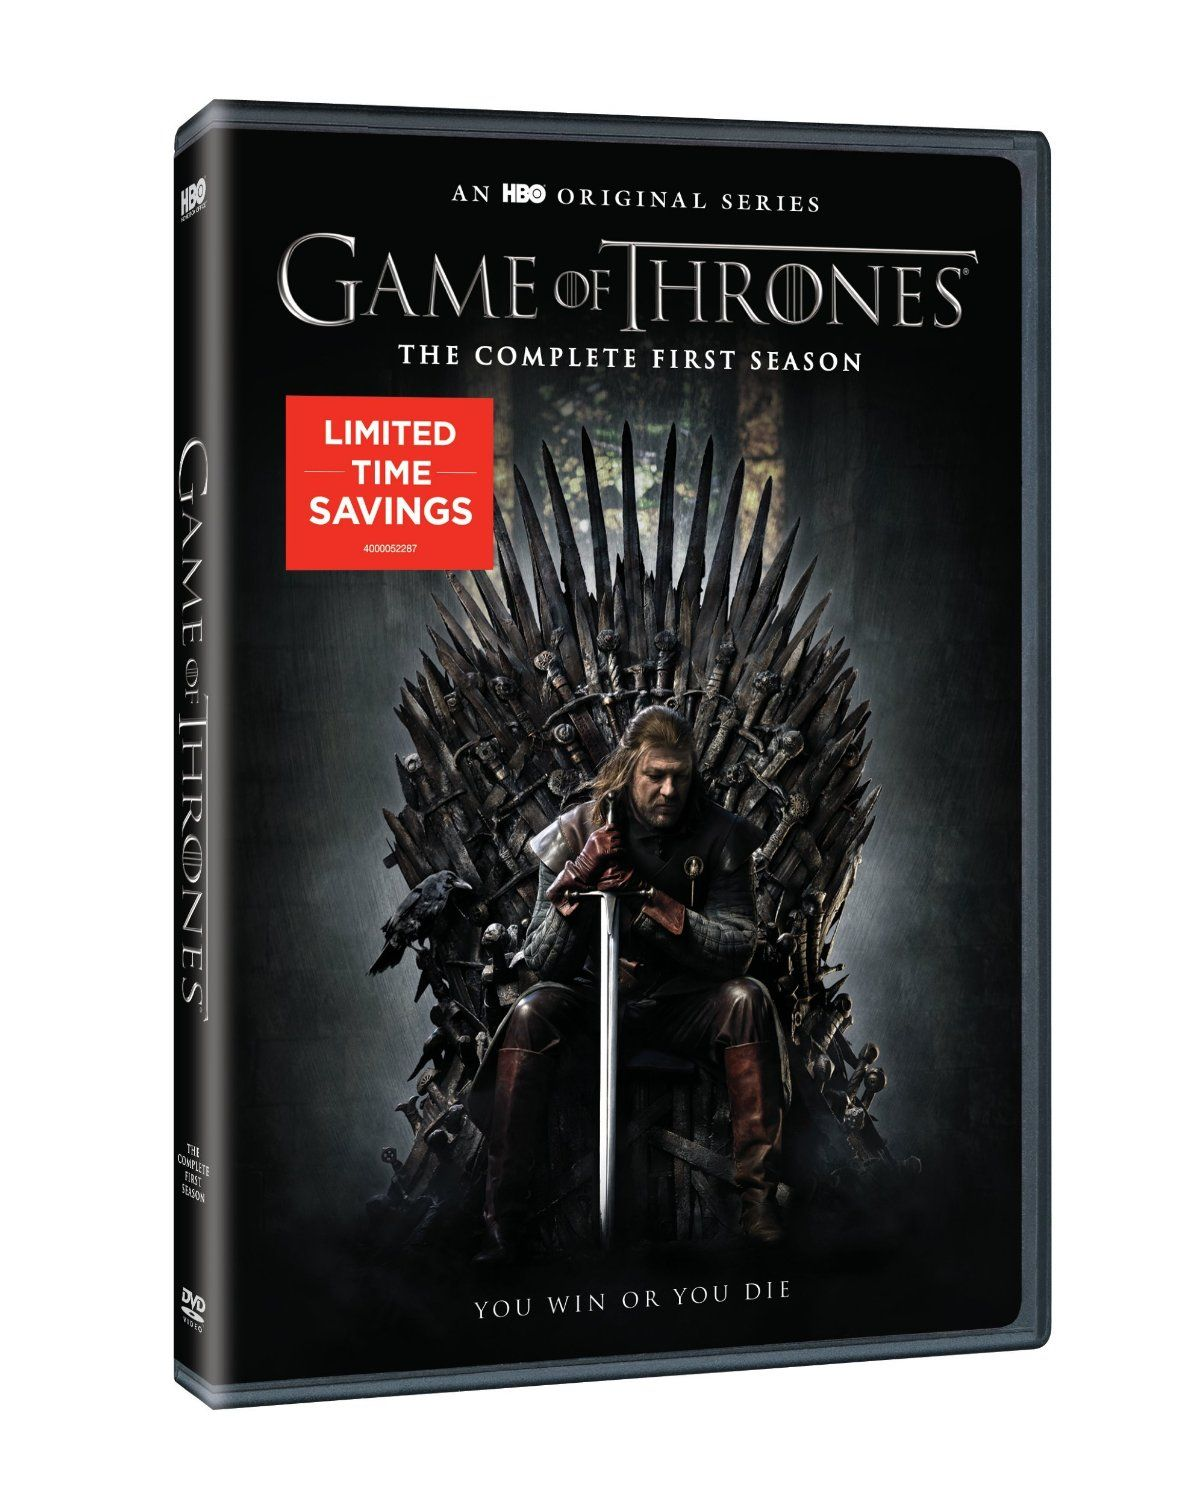 Game of ThronesS1(Viva/Disct15/DVD) Based on the